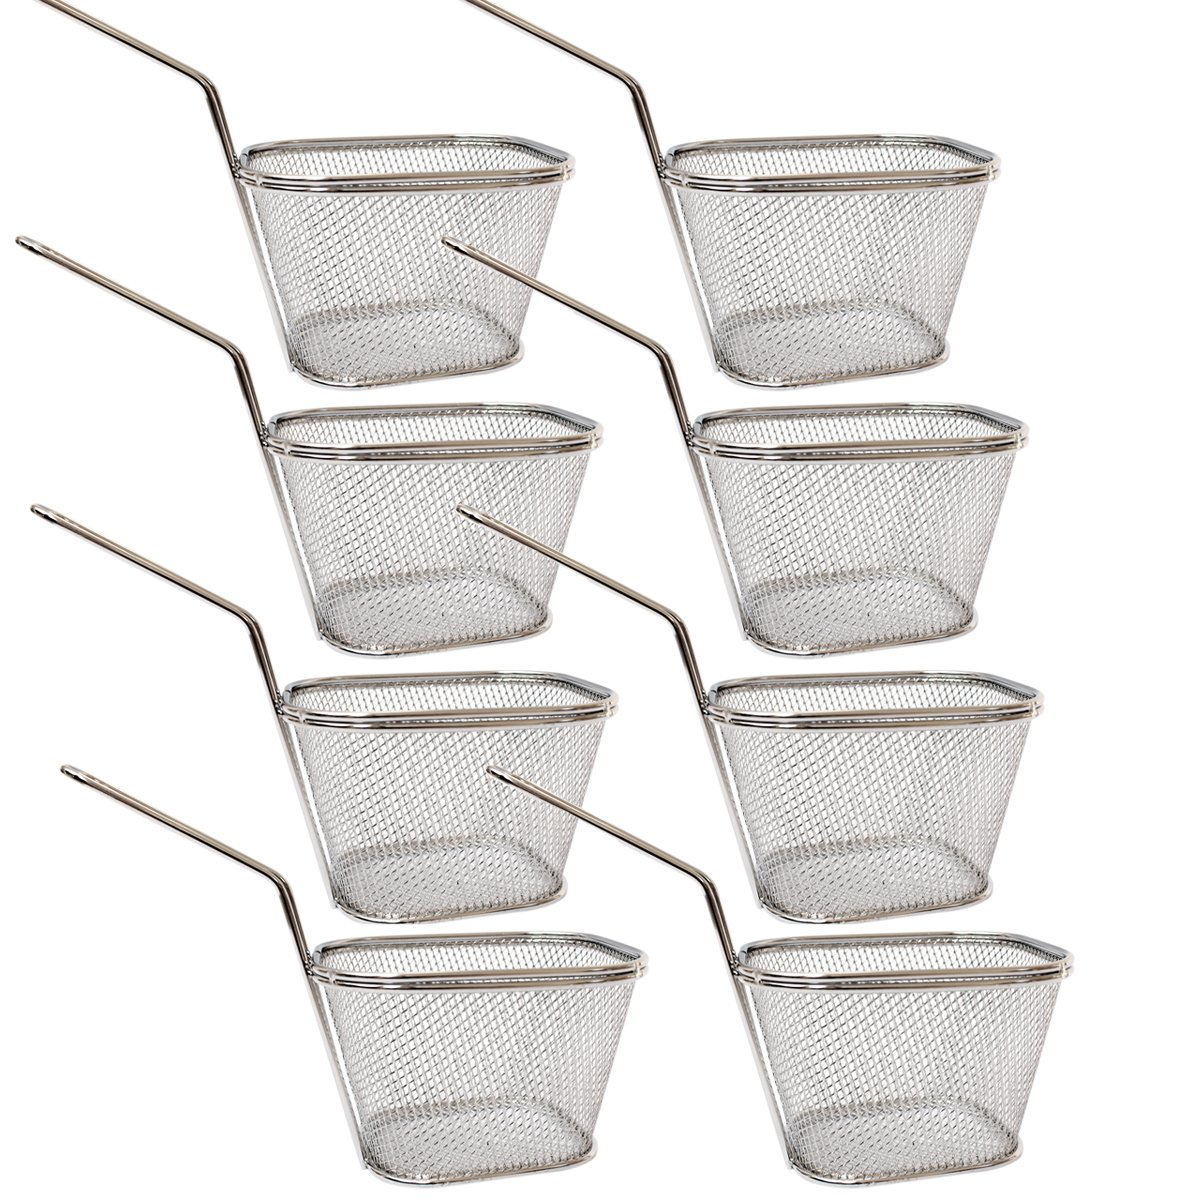 8pcs Stainless Steel Mini Fry Baskets and Cones, 10X8X7cm, Silver .Stainless Steel Fry Basket Present Fried Food, Table Serving